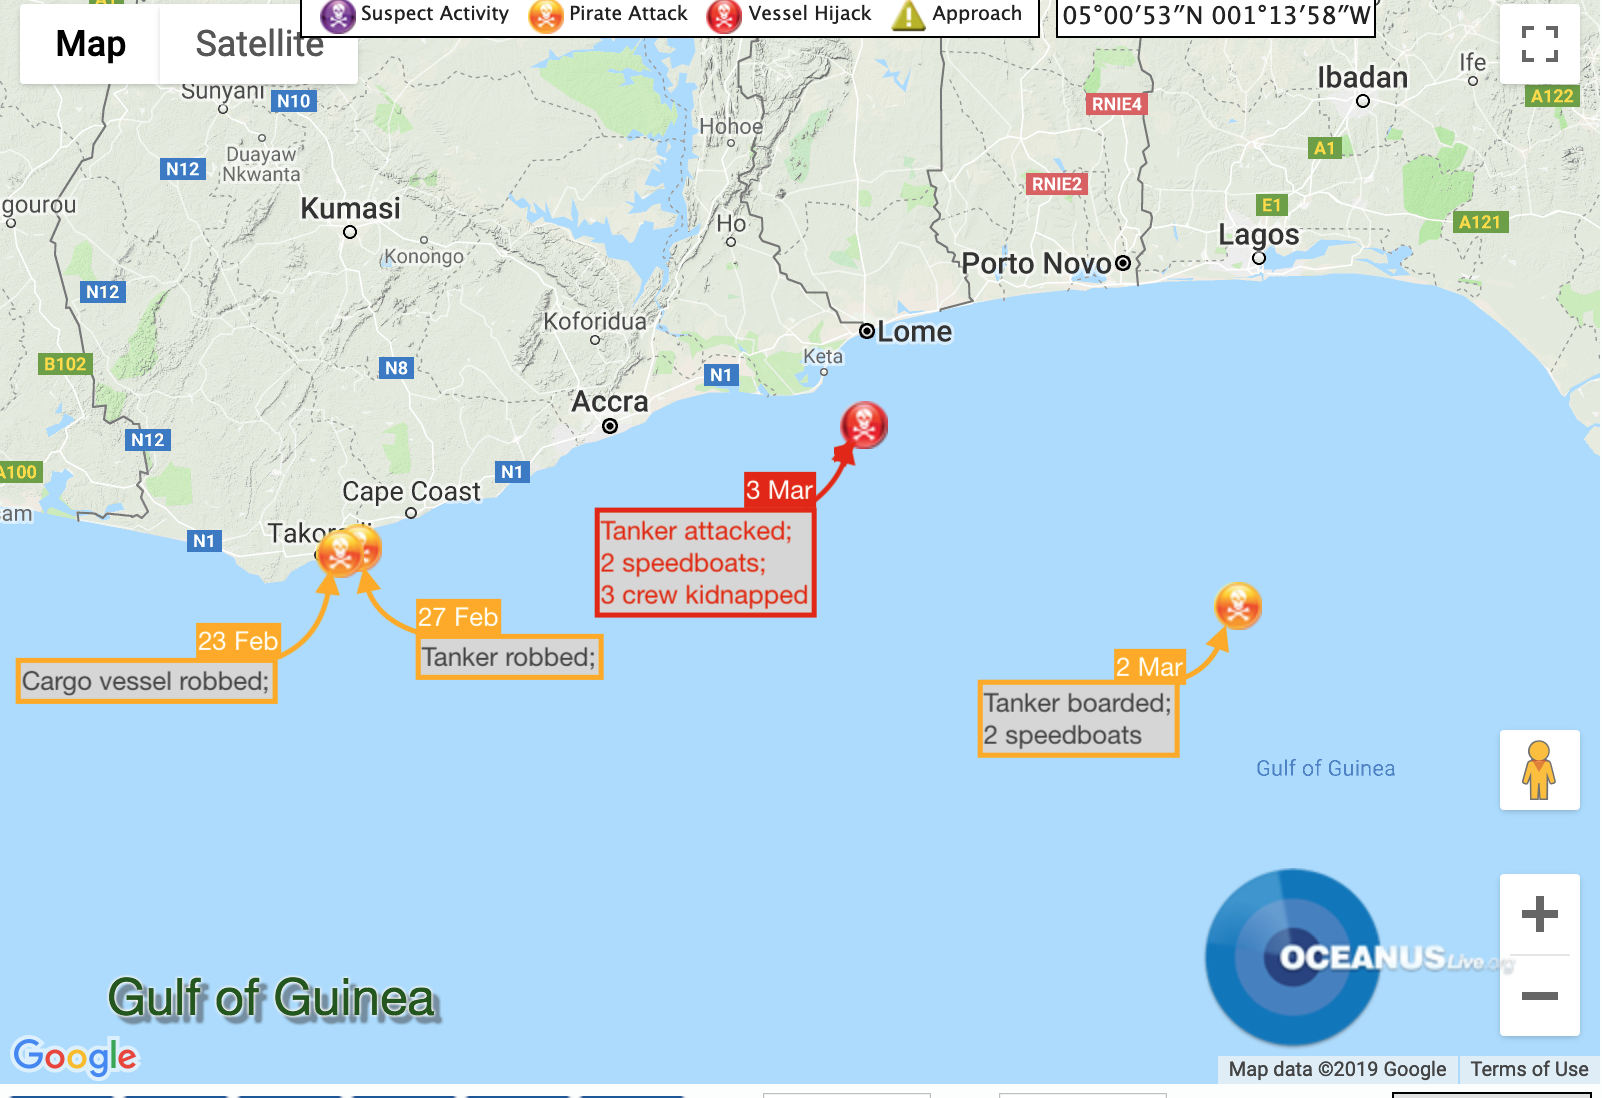 Pirate Activity off Lome & Nigeria. Map: OCEANUSLive